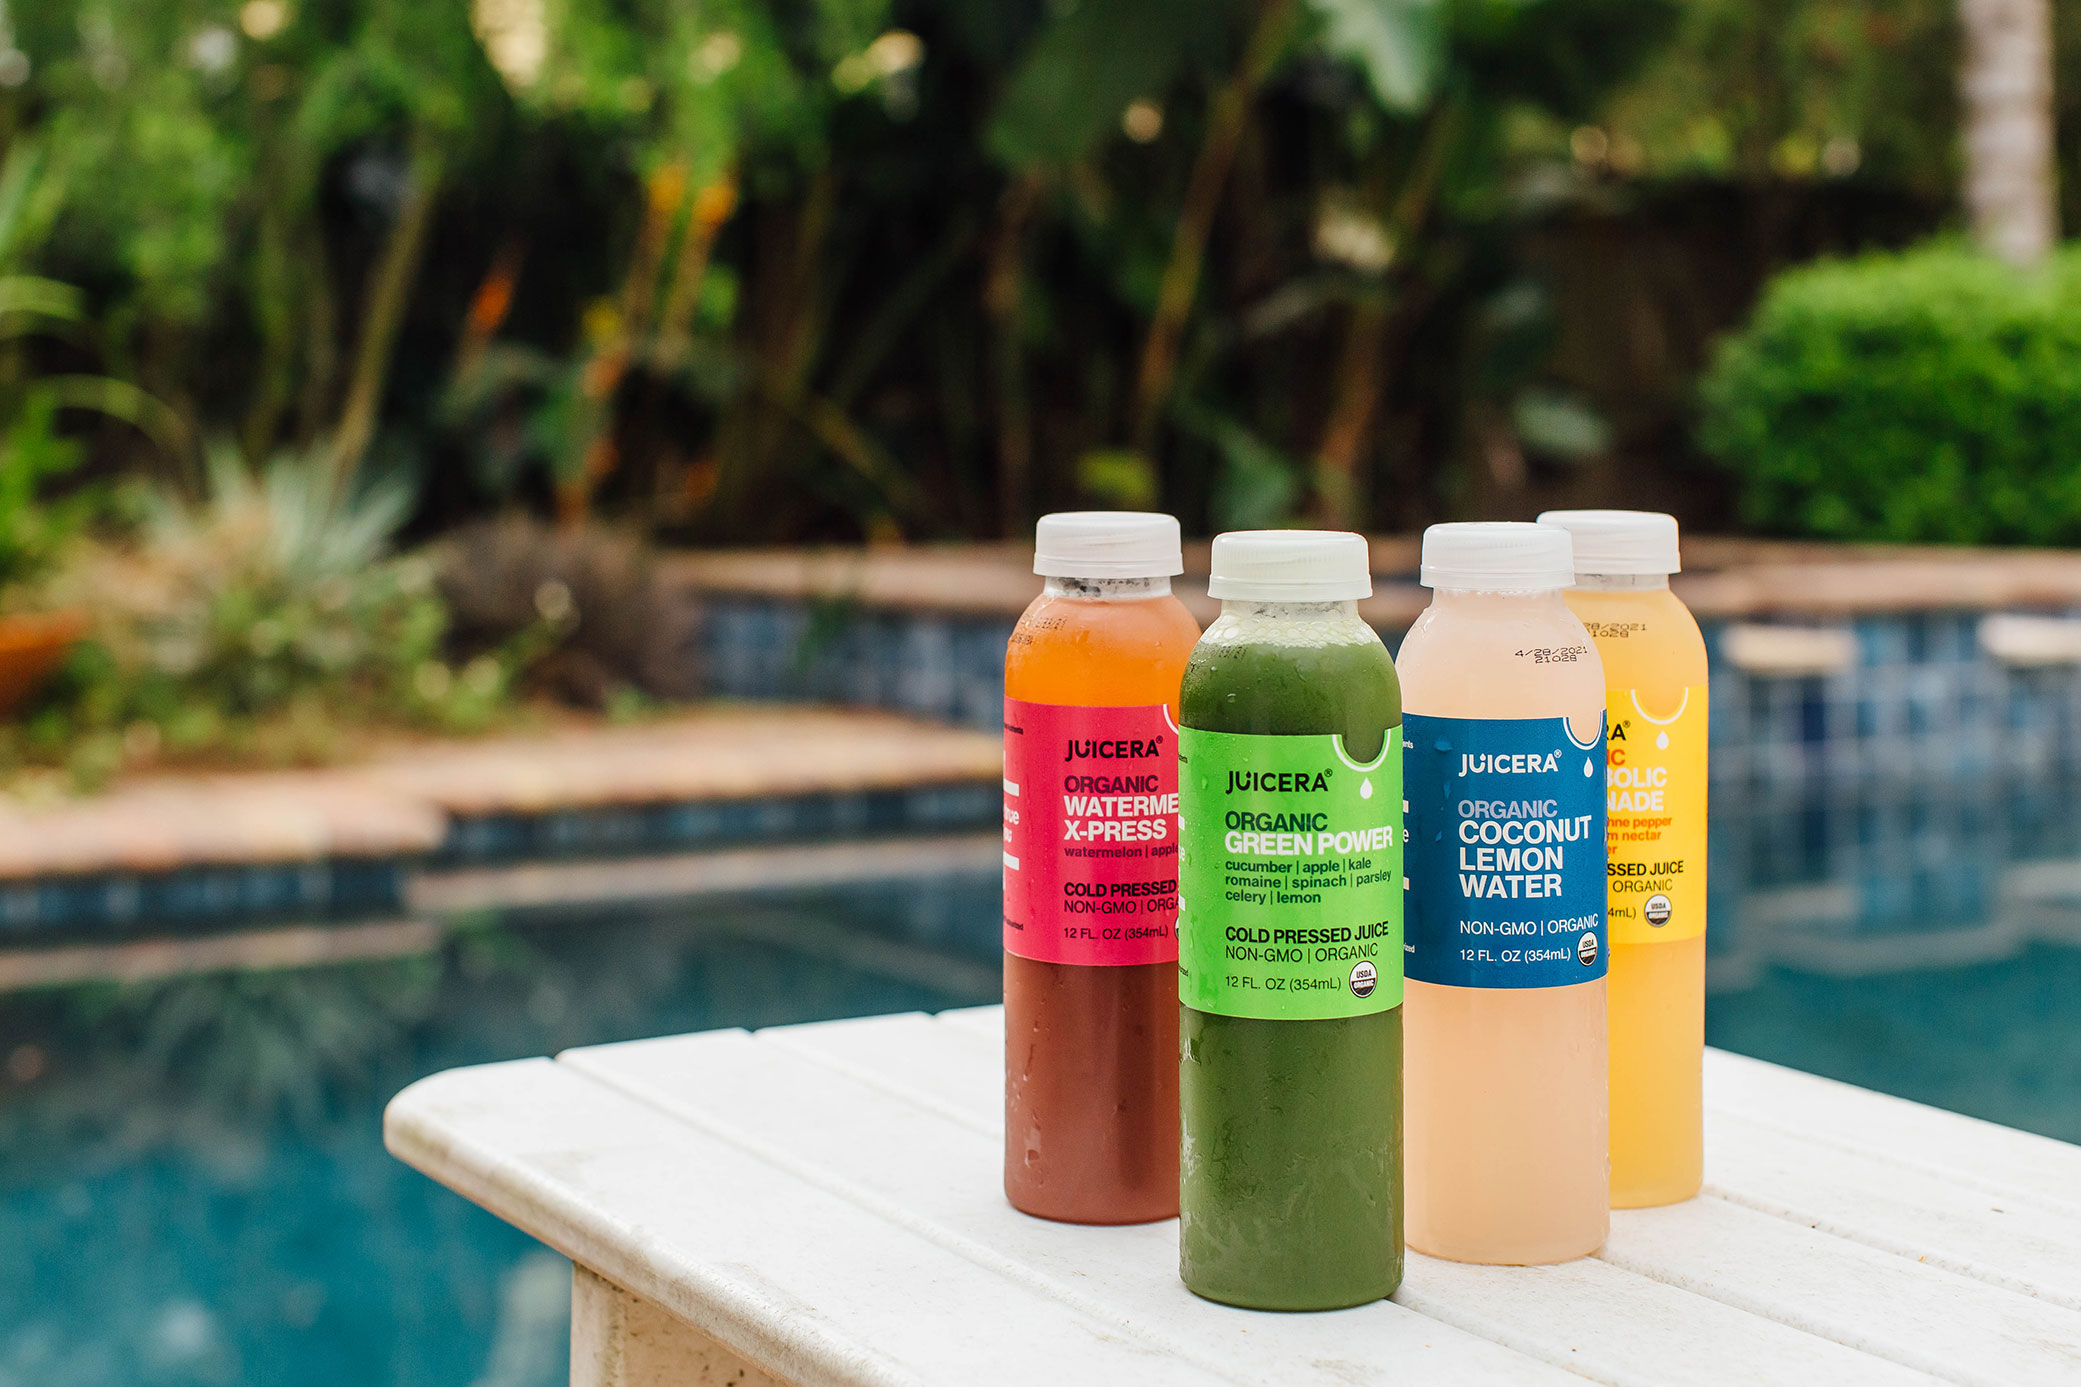 Juicera packaging design showcased poolside with different flavors displayed on a table.